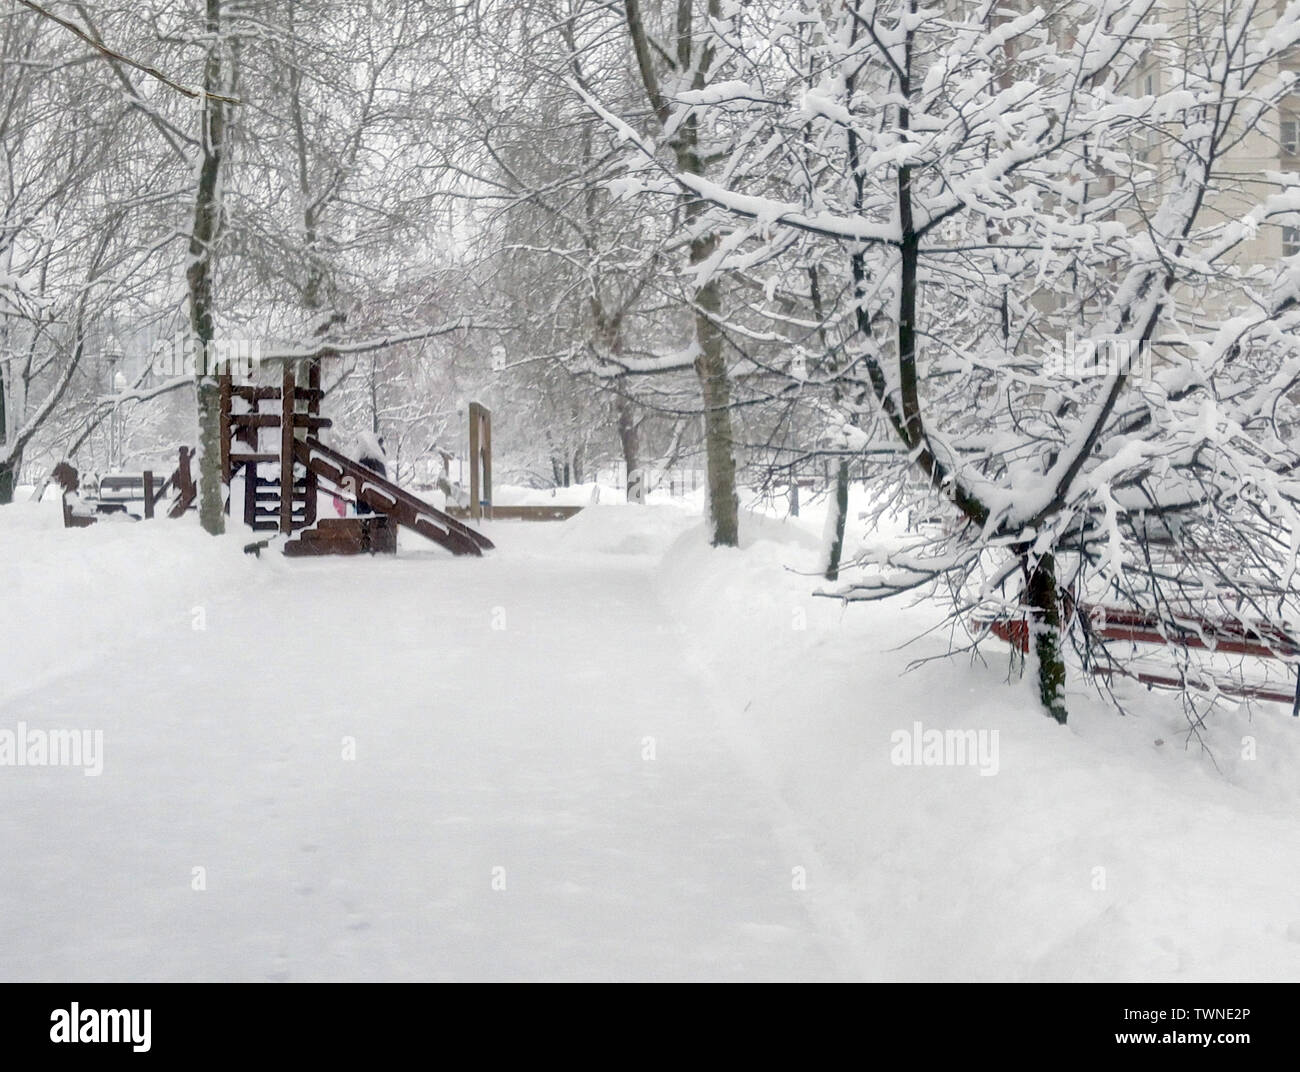 city park after snowfall at day - Stock Image